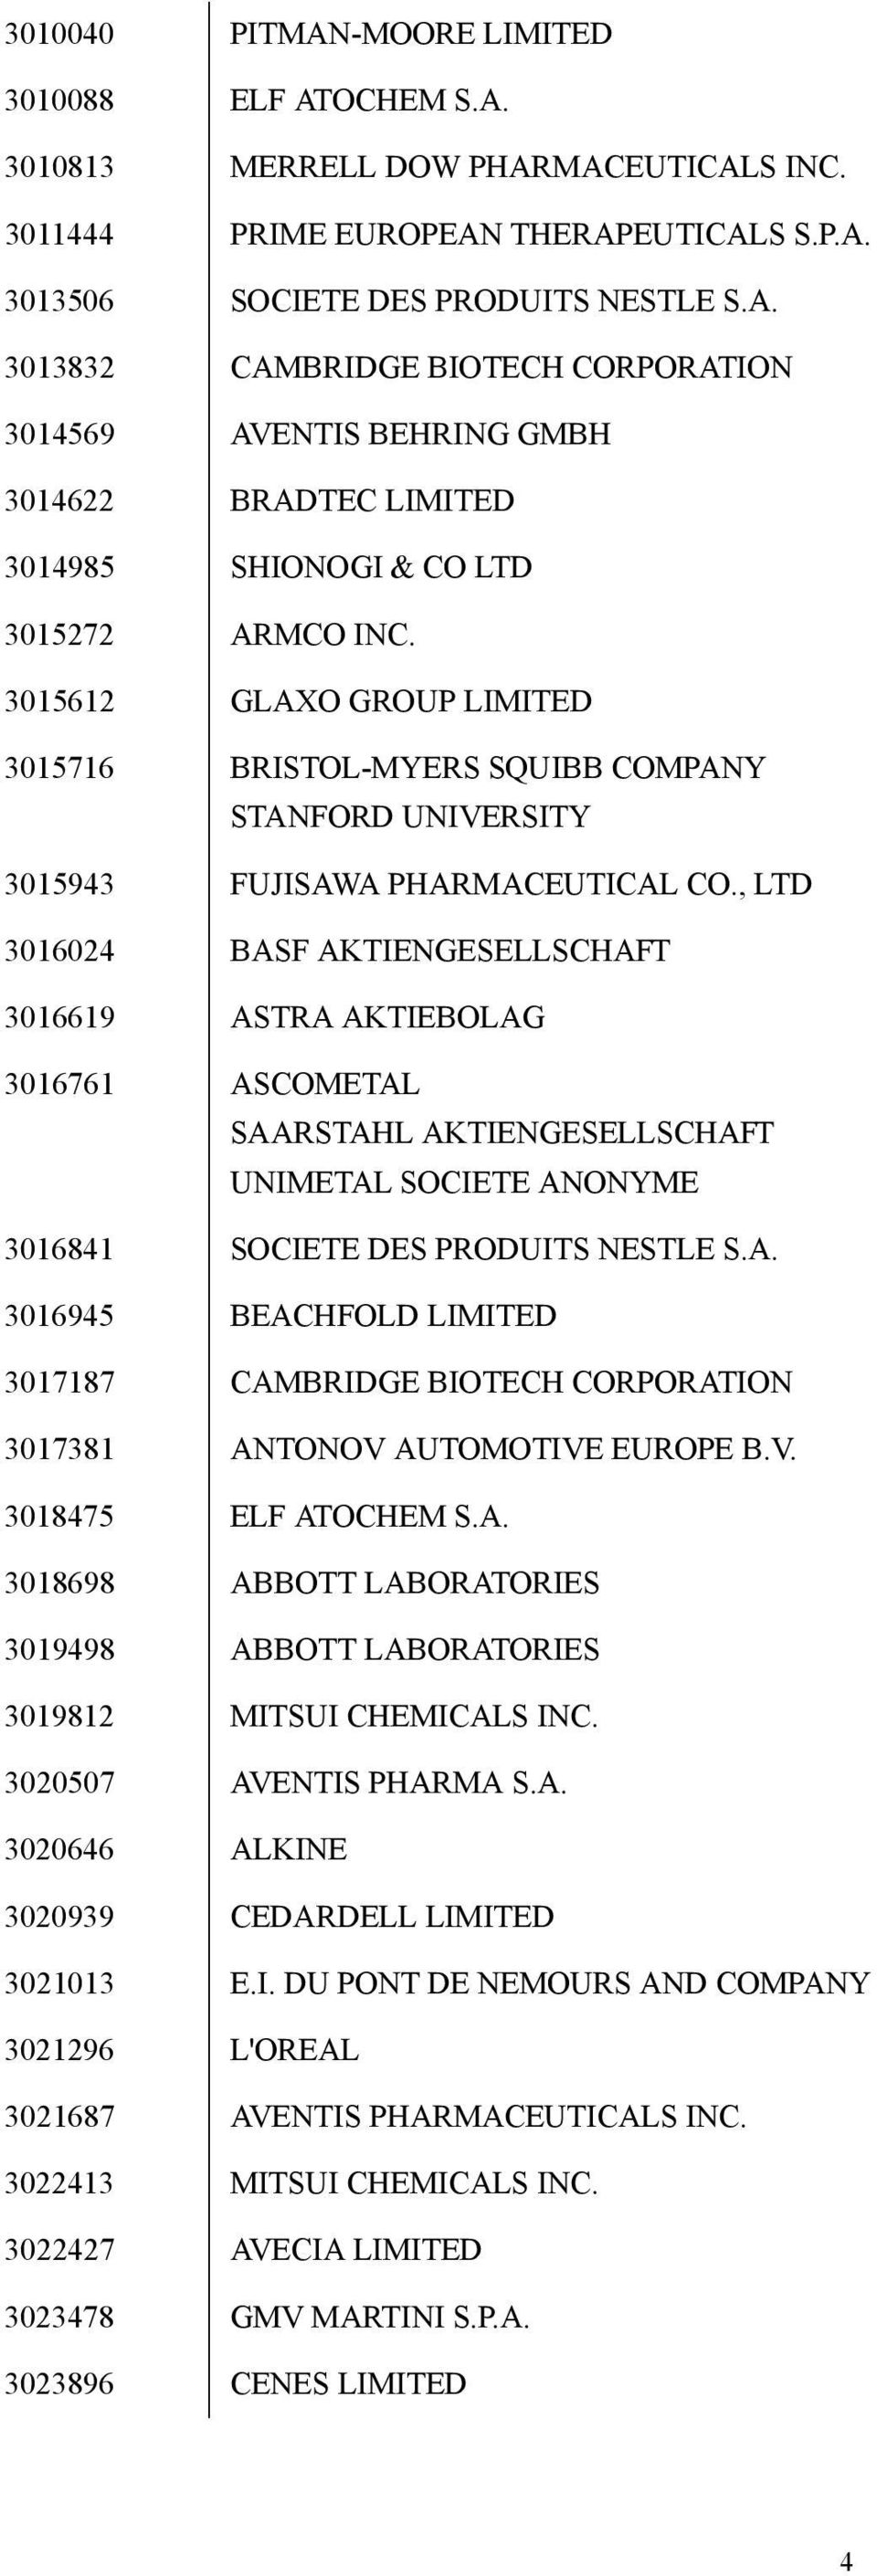 , LTD 3016024 BASF AKTIENGESELLSCHAFT 3016619 ASTRA AKTIEBOLAG 3016761 ASCOMETAL SAARSTAHL AKTIENGESELLSCHAFT UNIMETAL SOCIETE ANONYME 3016841 SOCIETE DES PRODUITS NESTLE S.A. 3016945 BEACHFOLD LIMITED 3017187 CAMBRIDGE BIOTECH CORPORATION 3017381 ANTONOV AUTOMOTIVE EUROPE B.